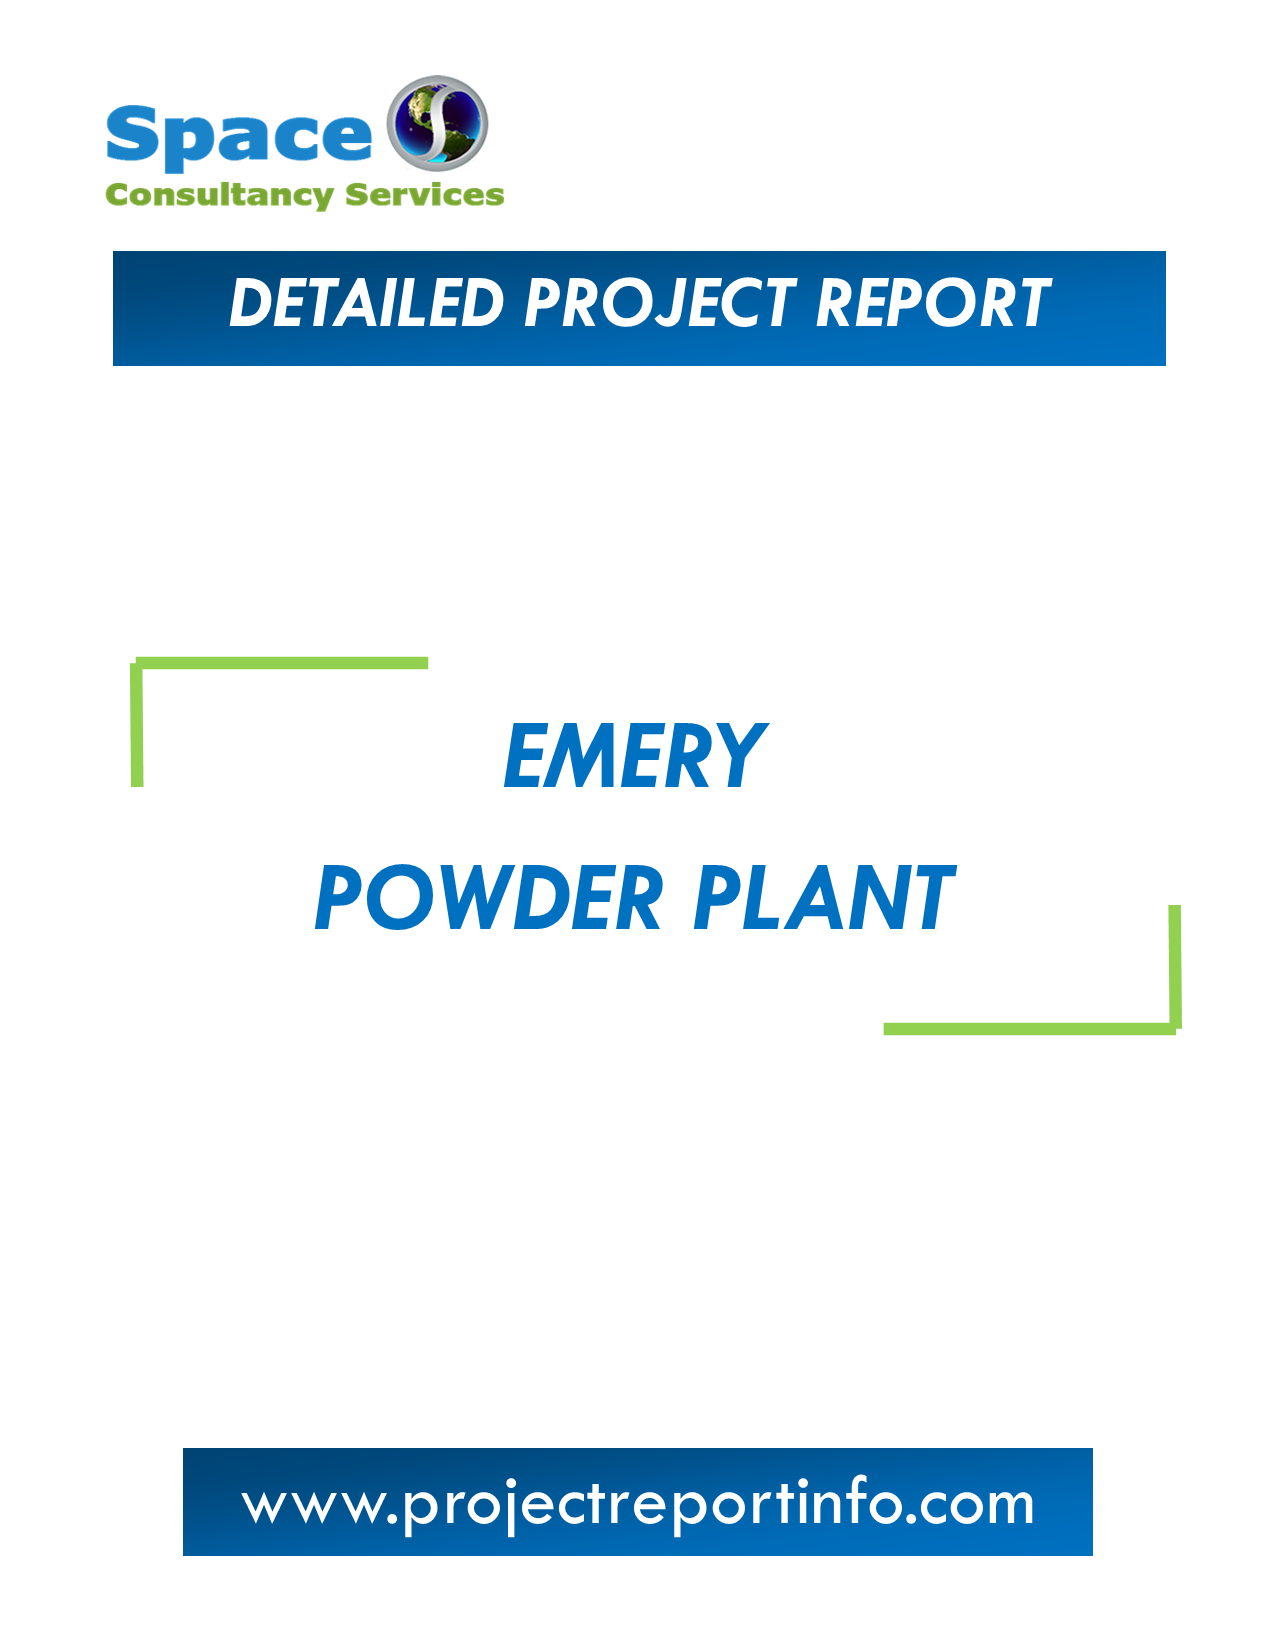 Project Report on Emery Powder Plant